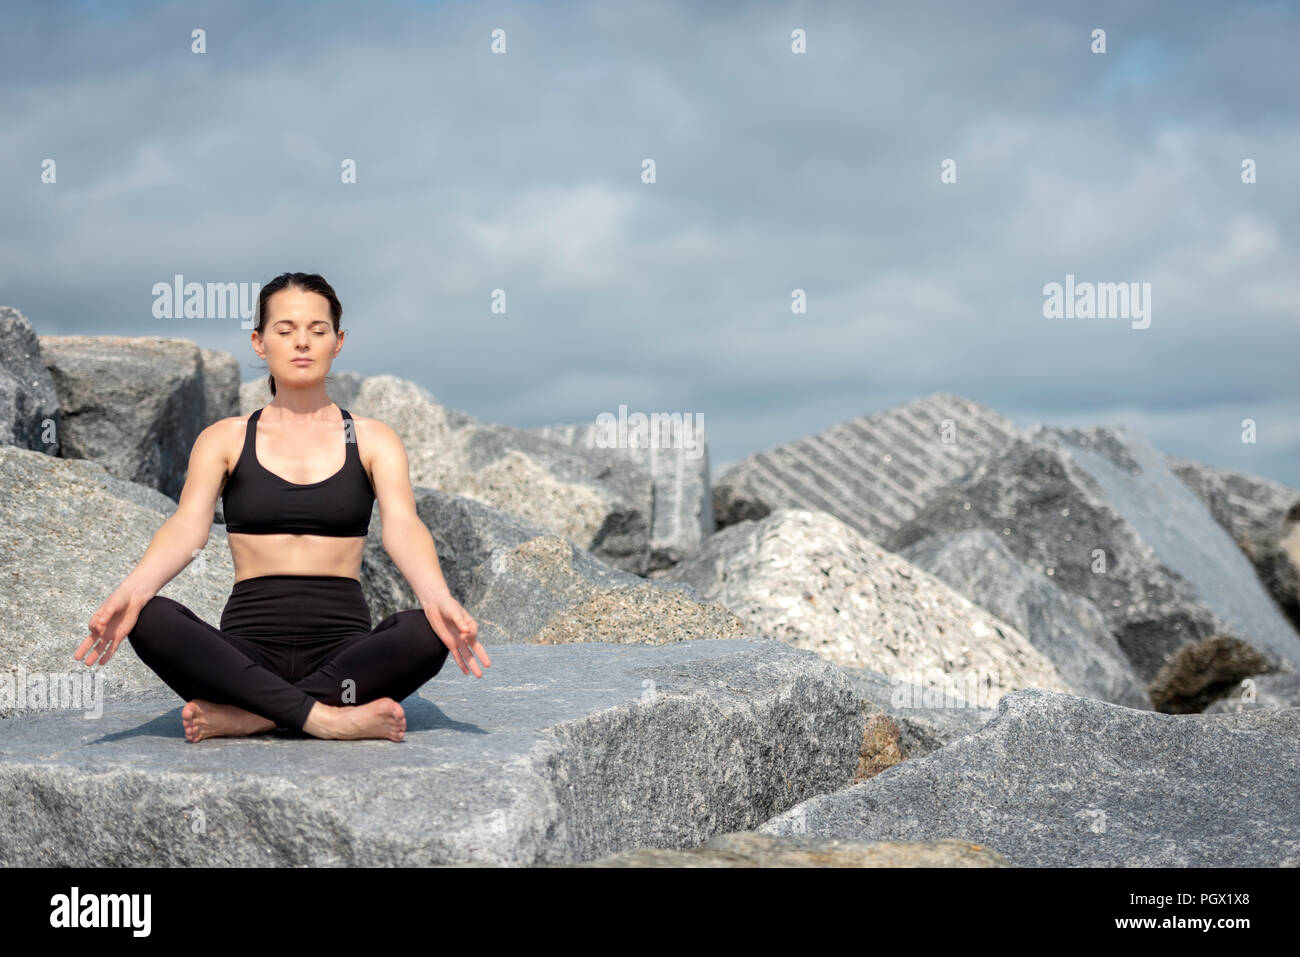 woman sitting meditating outside on rocks, copyspace. - Stock Image